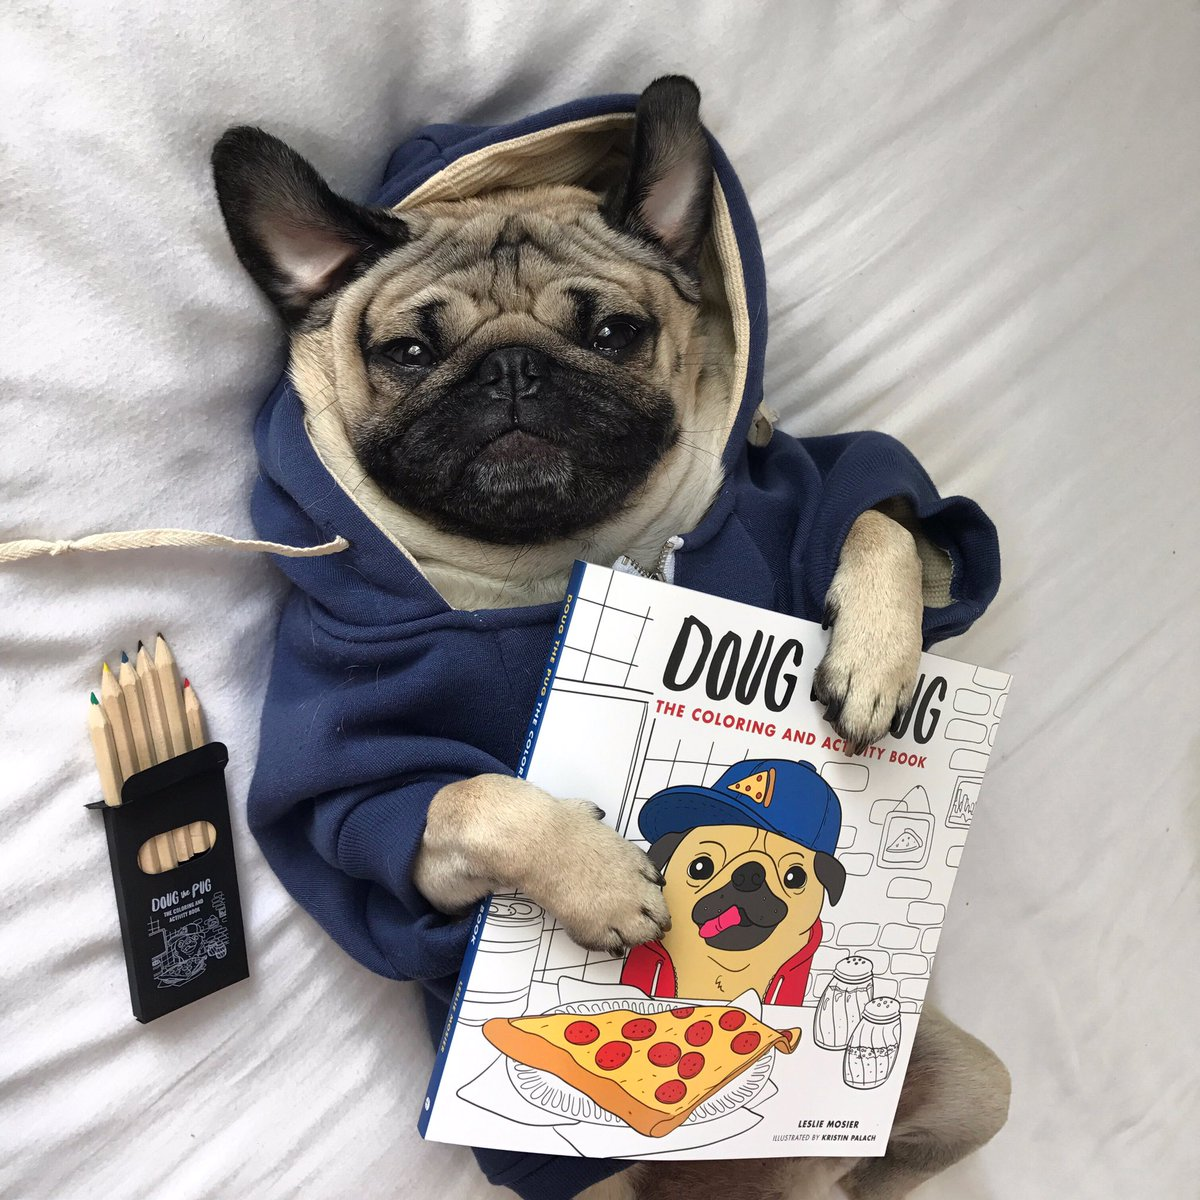 doug the pug book doug the pug on twitter quot the coloring book u have been 471